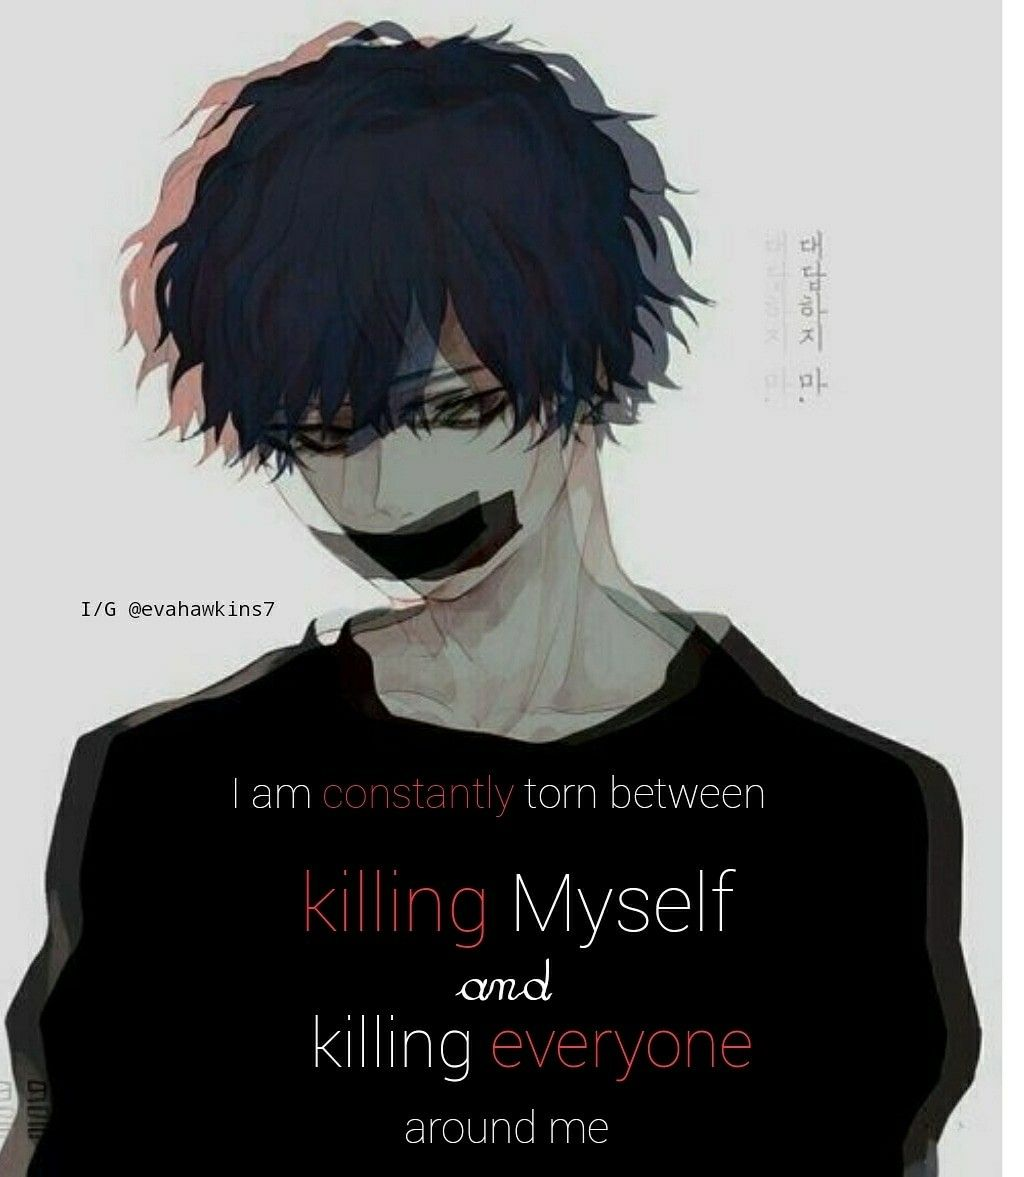 Anime Emo Quotes About Suicide: Pin By Naiara On Sad T Frases Sad And Manga